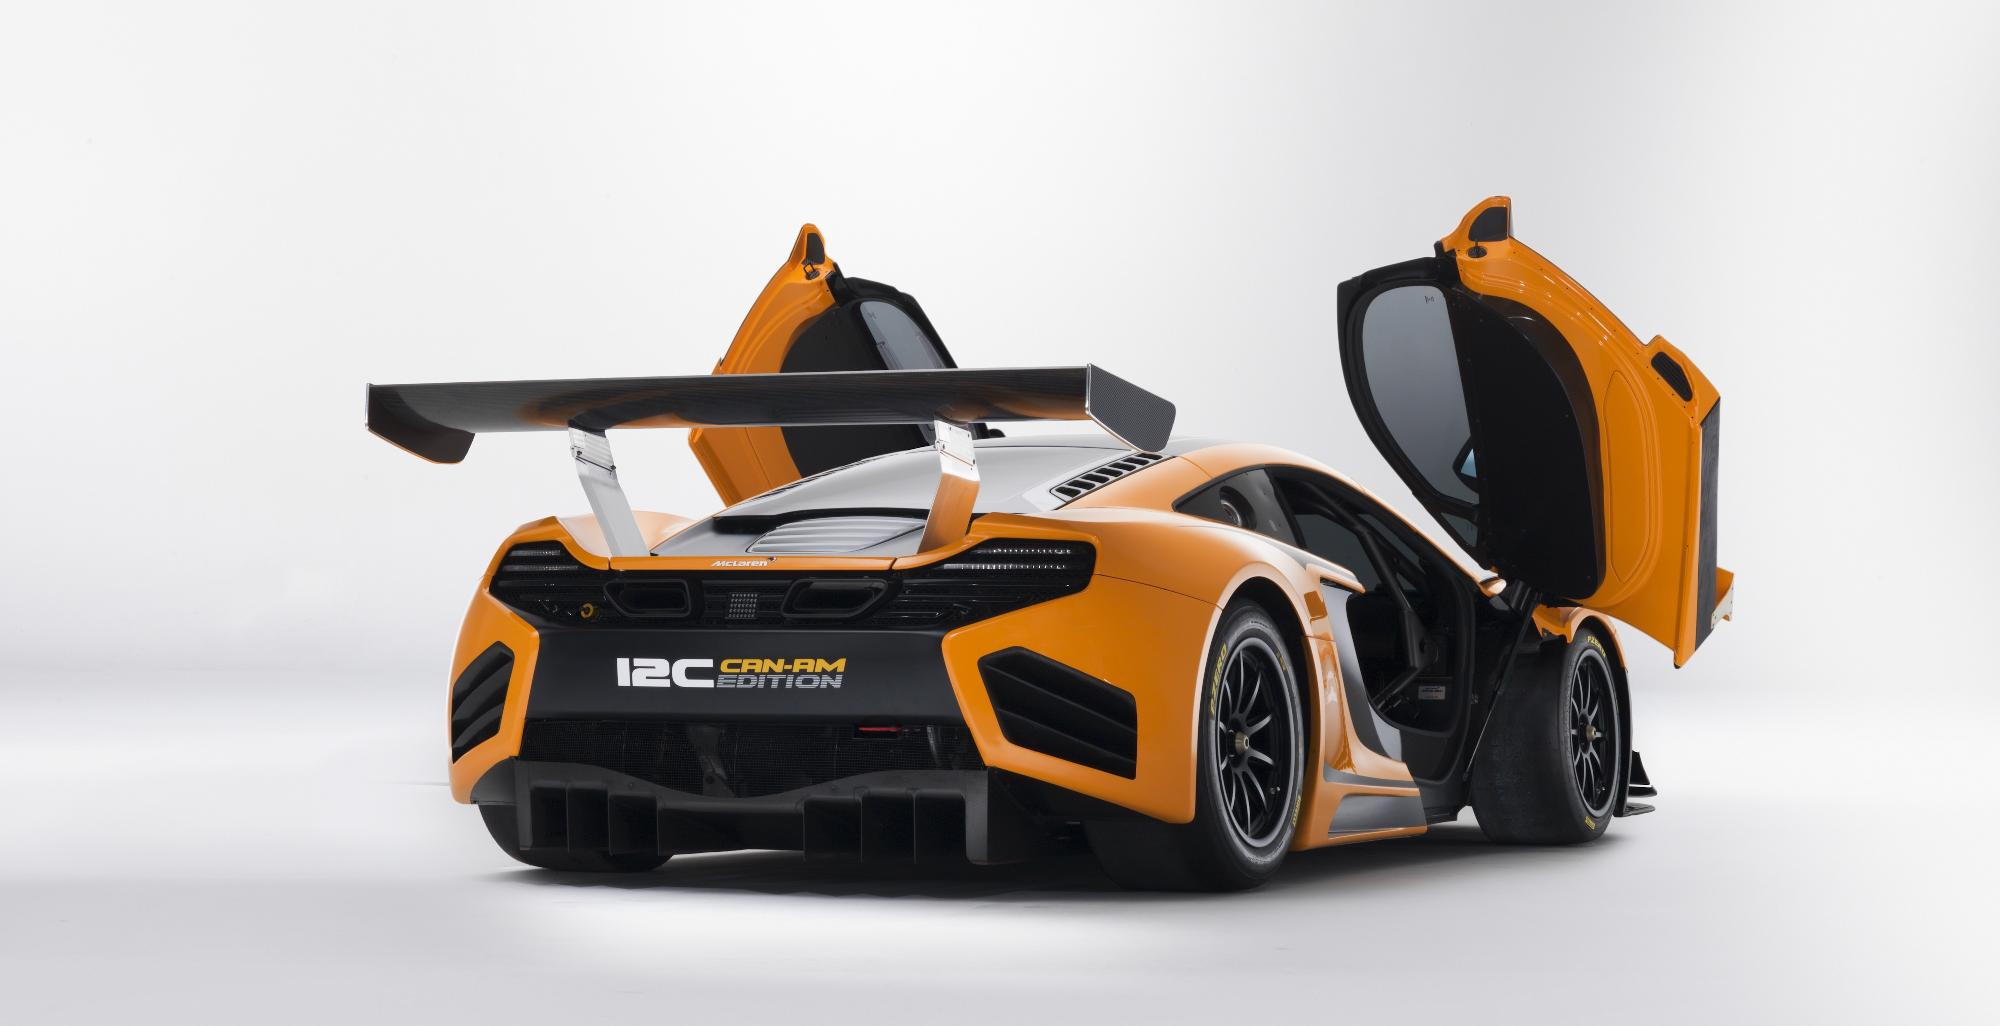 Sports Cars McLAREN C CAN AM EDITION RACING CONCEPT